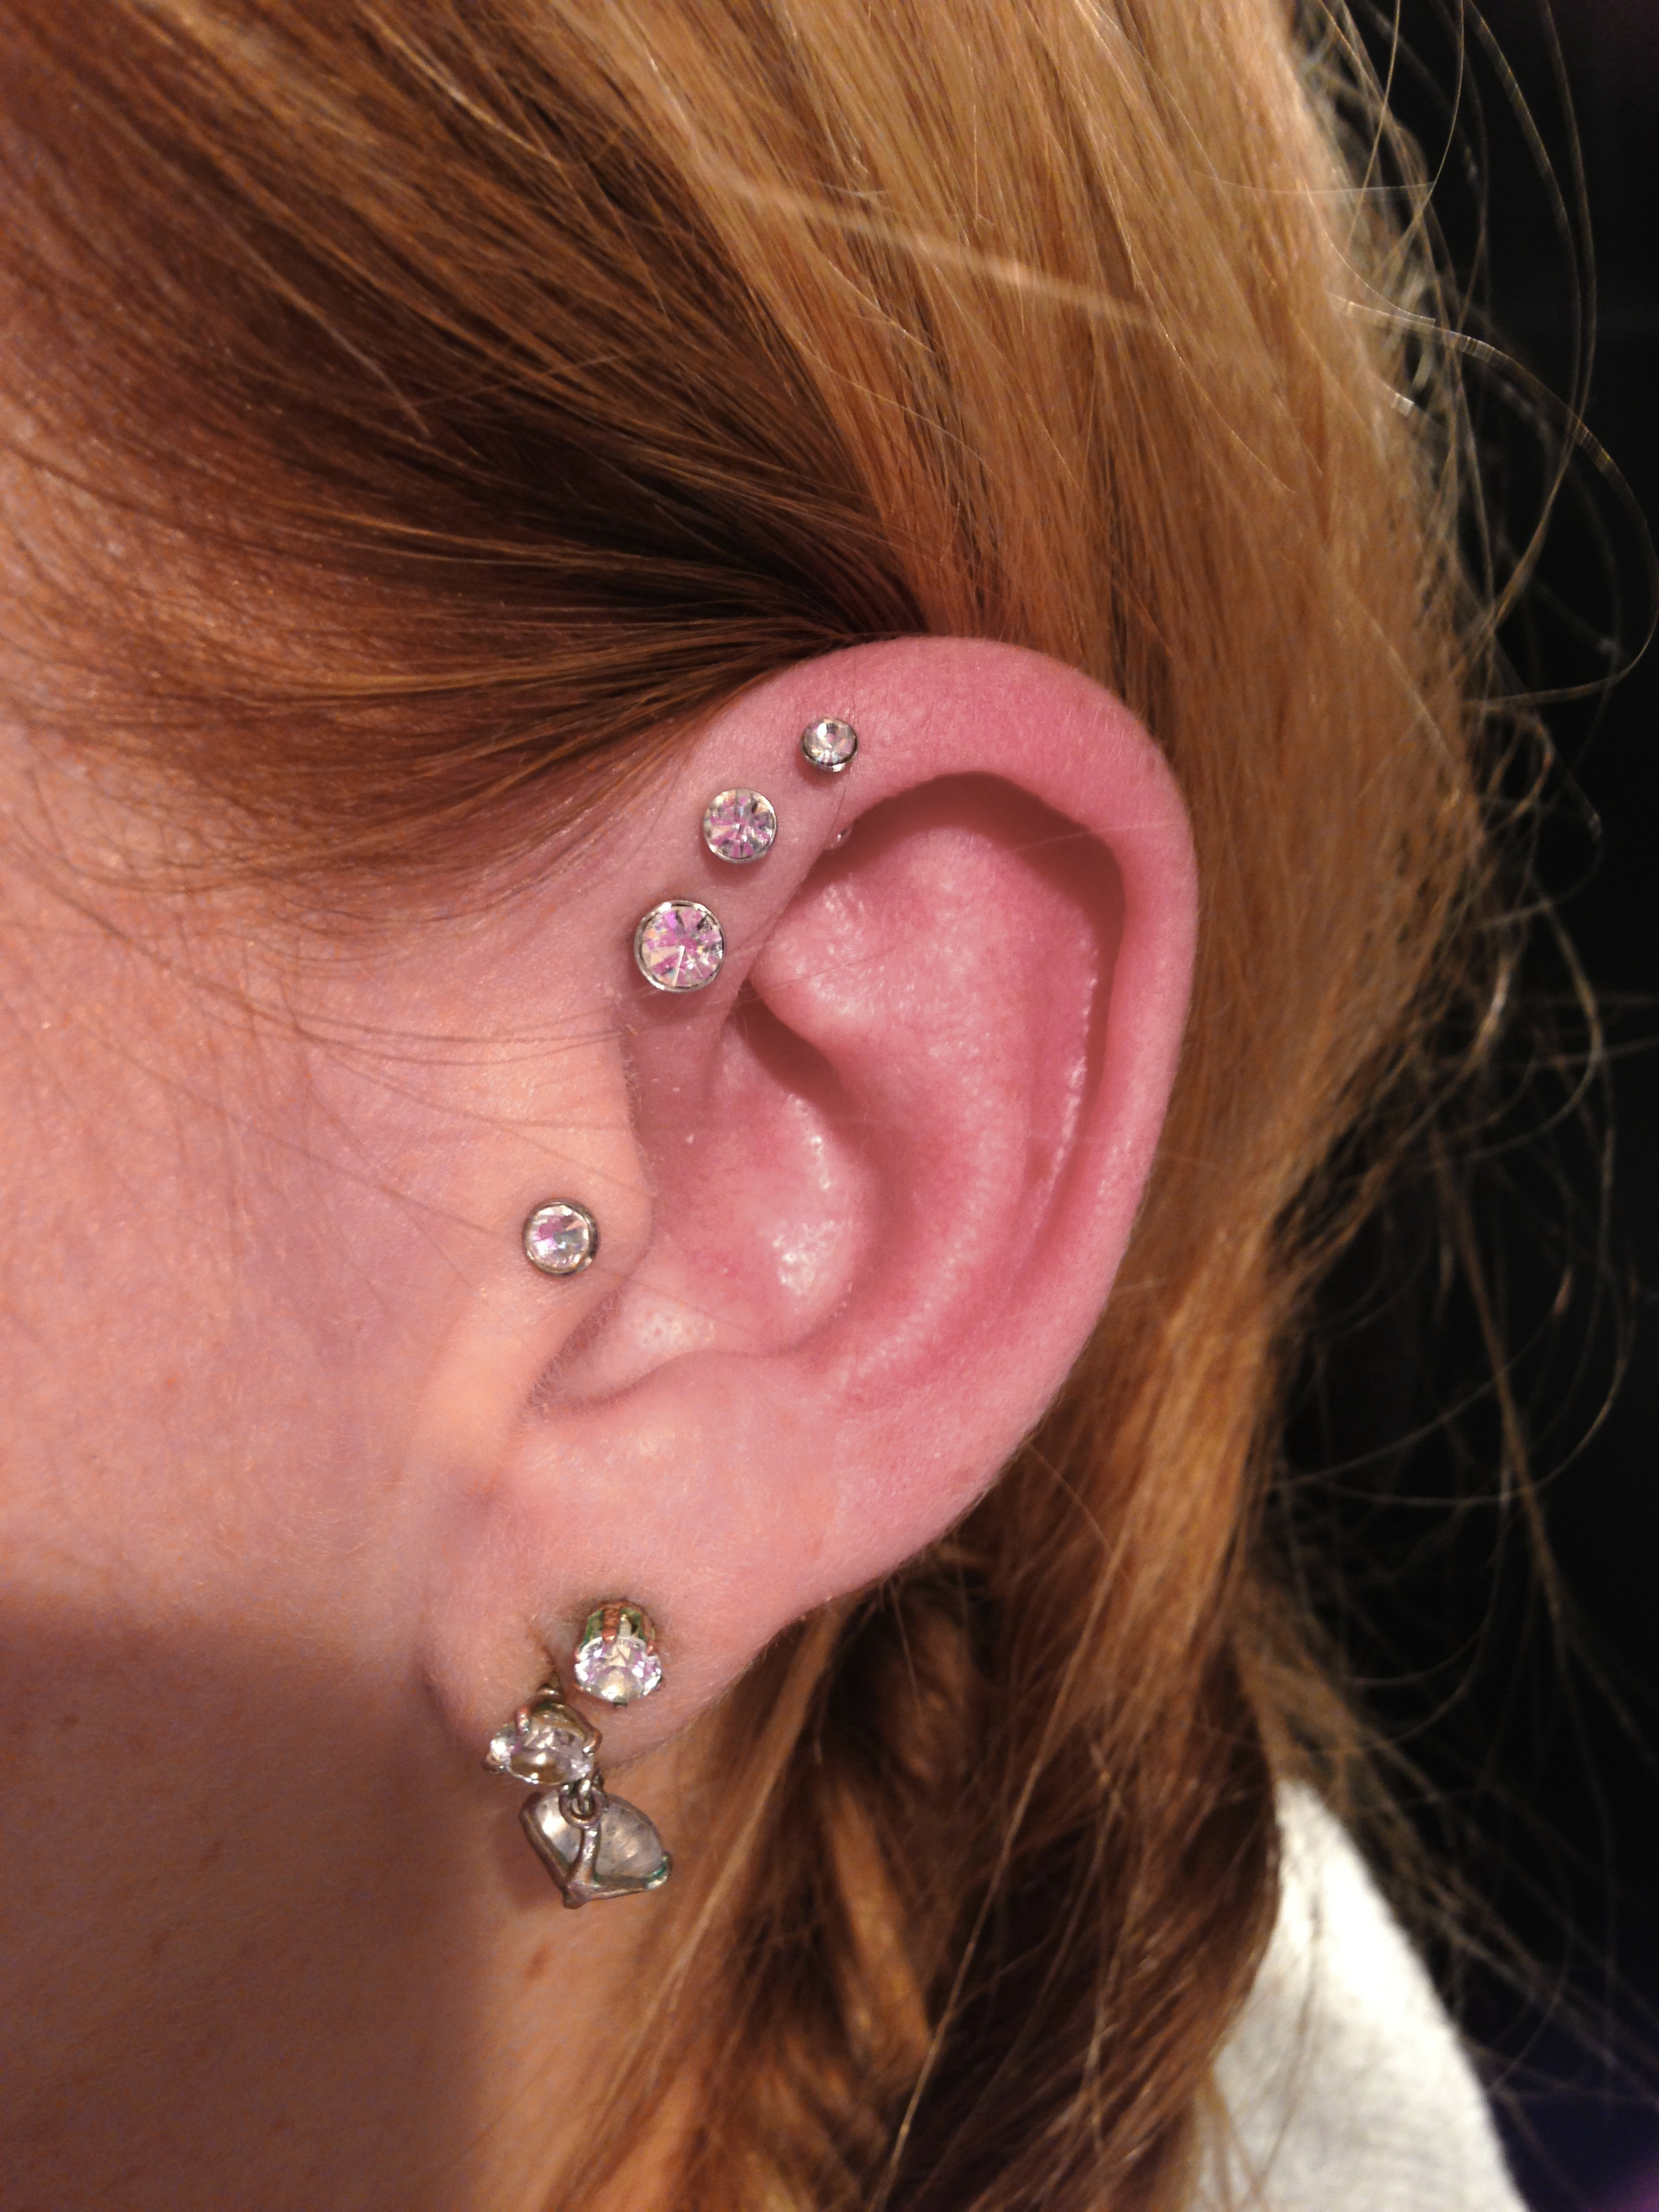 Piercing; Helix; Forward Helix